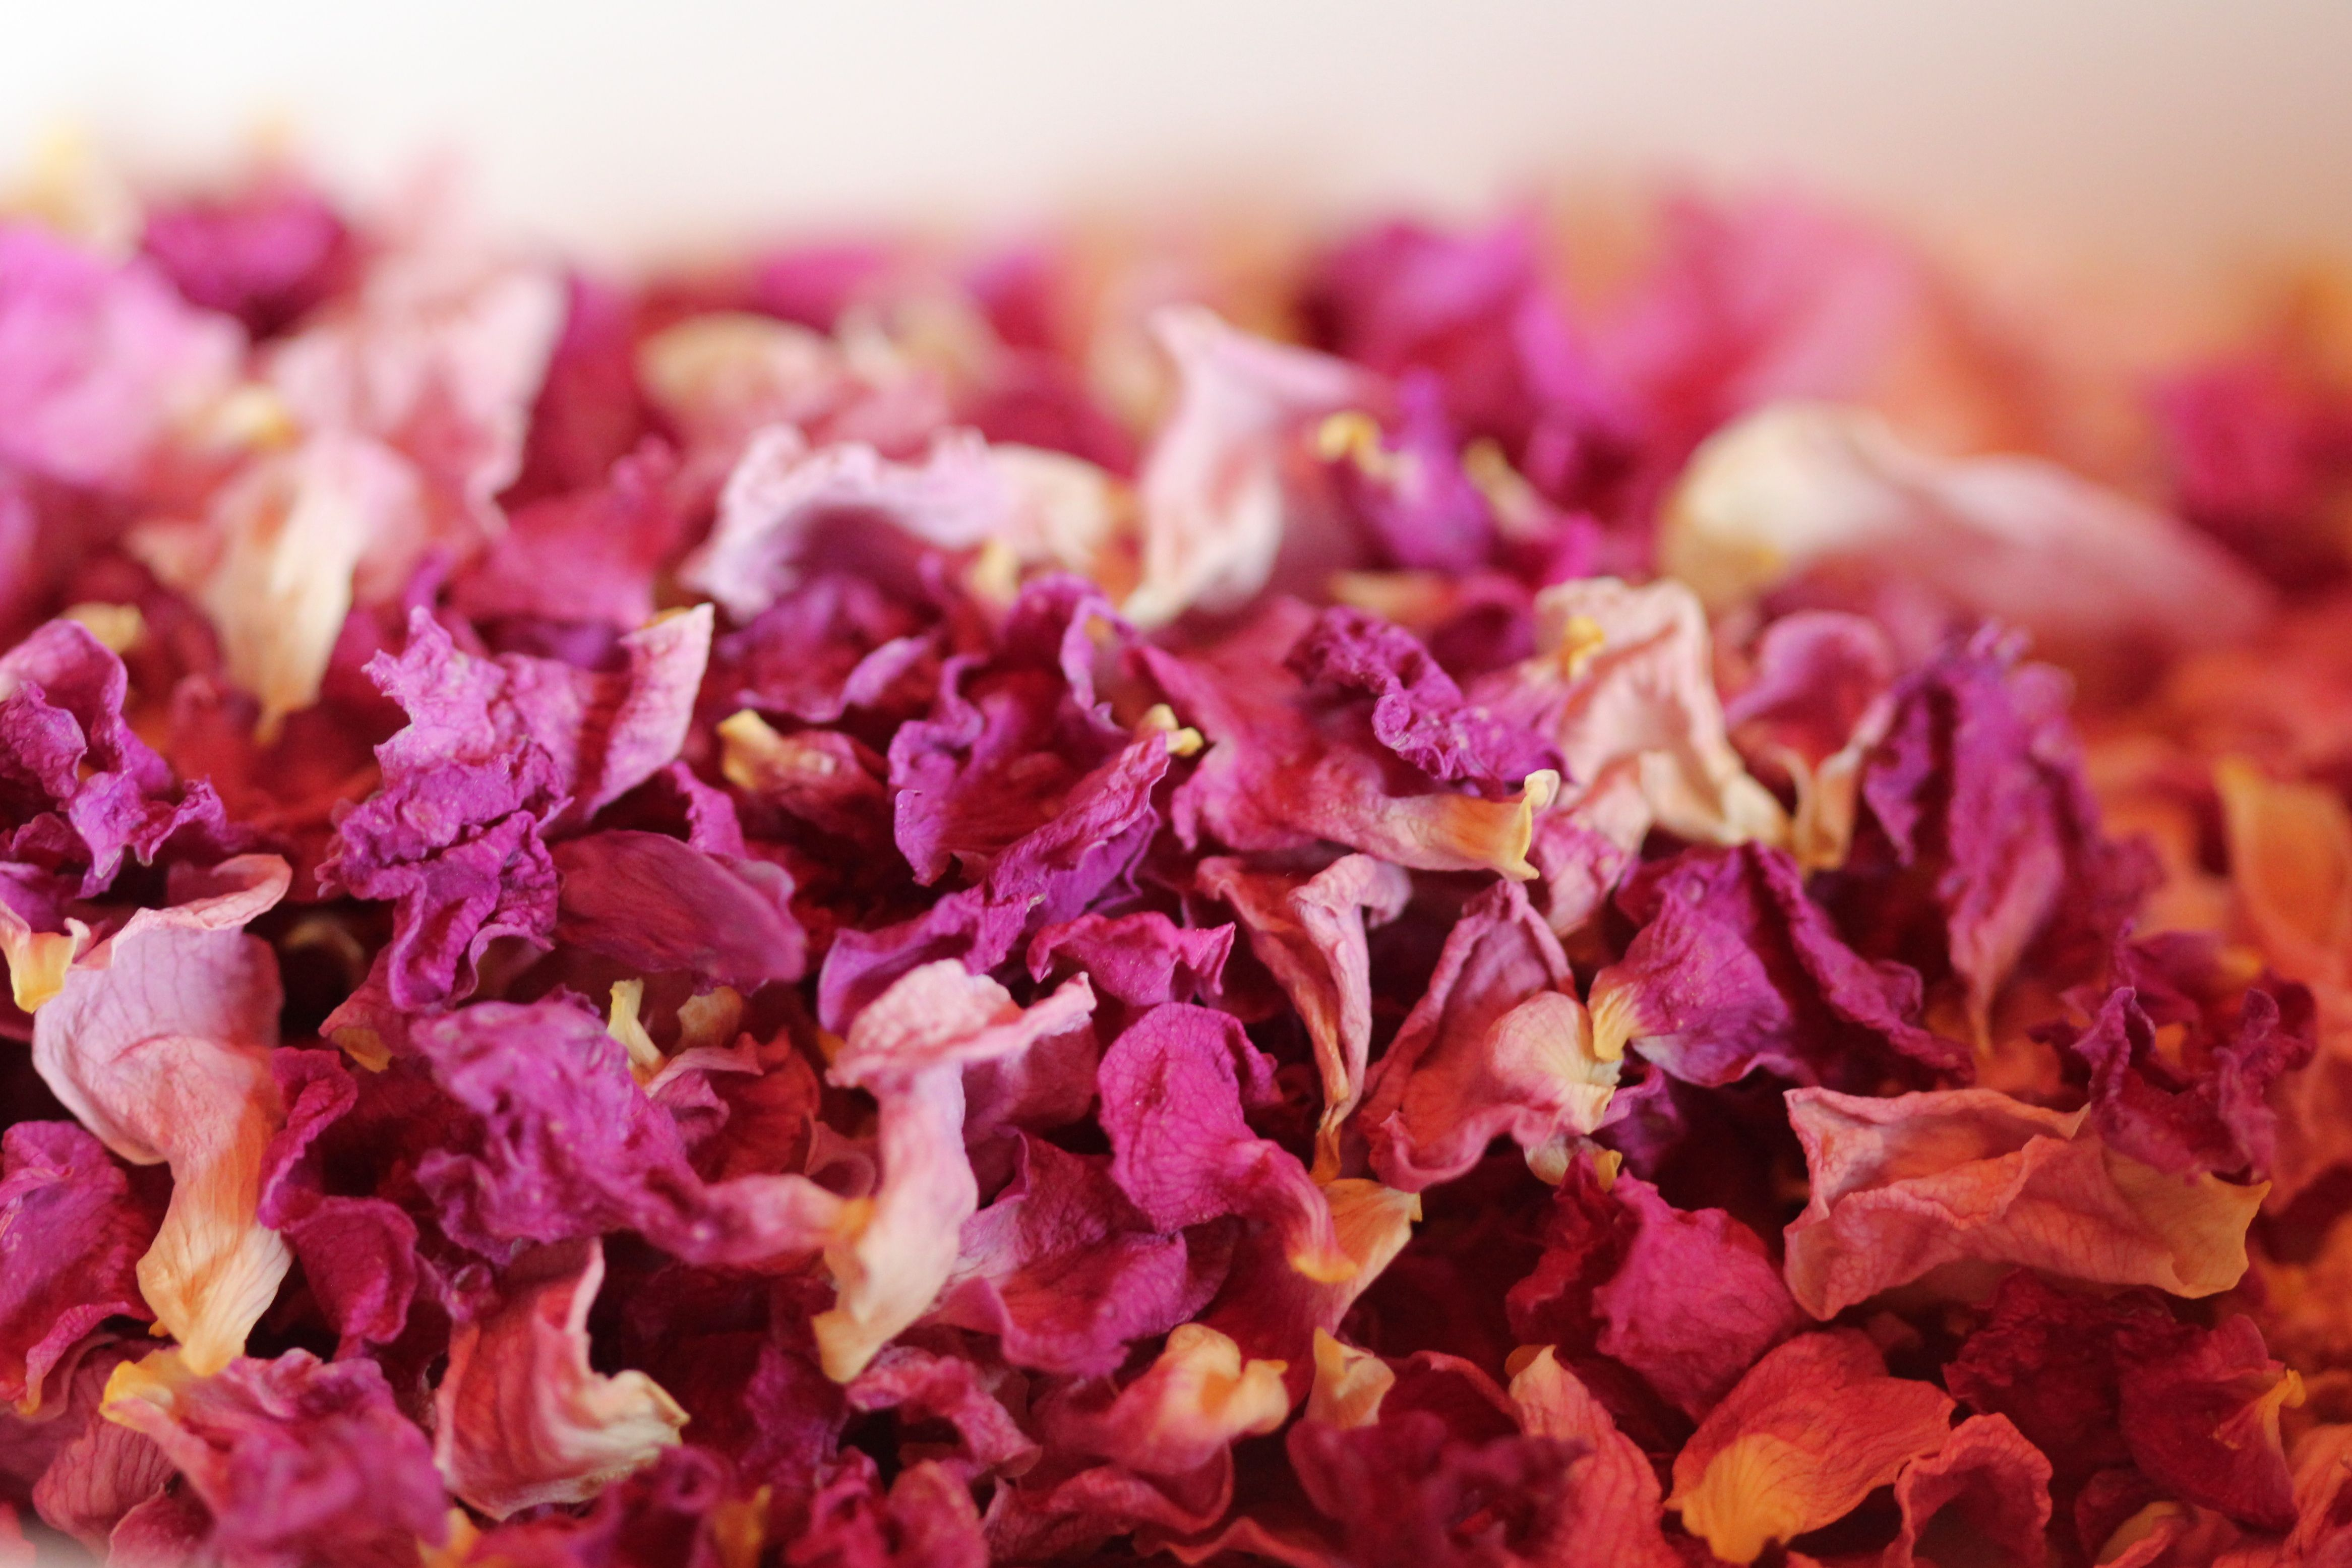 cooking with rose petals